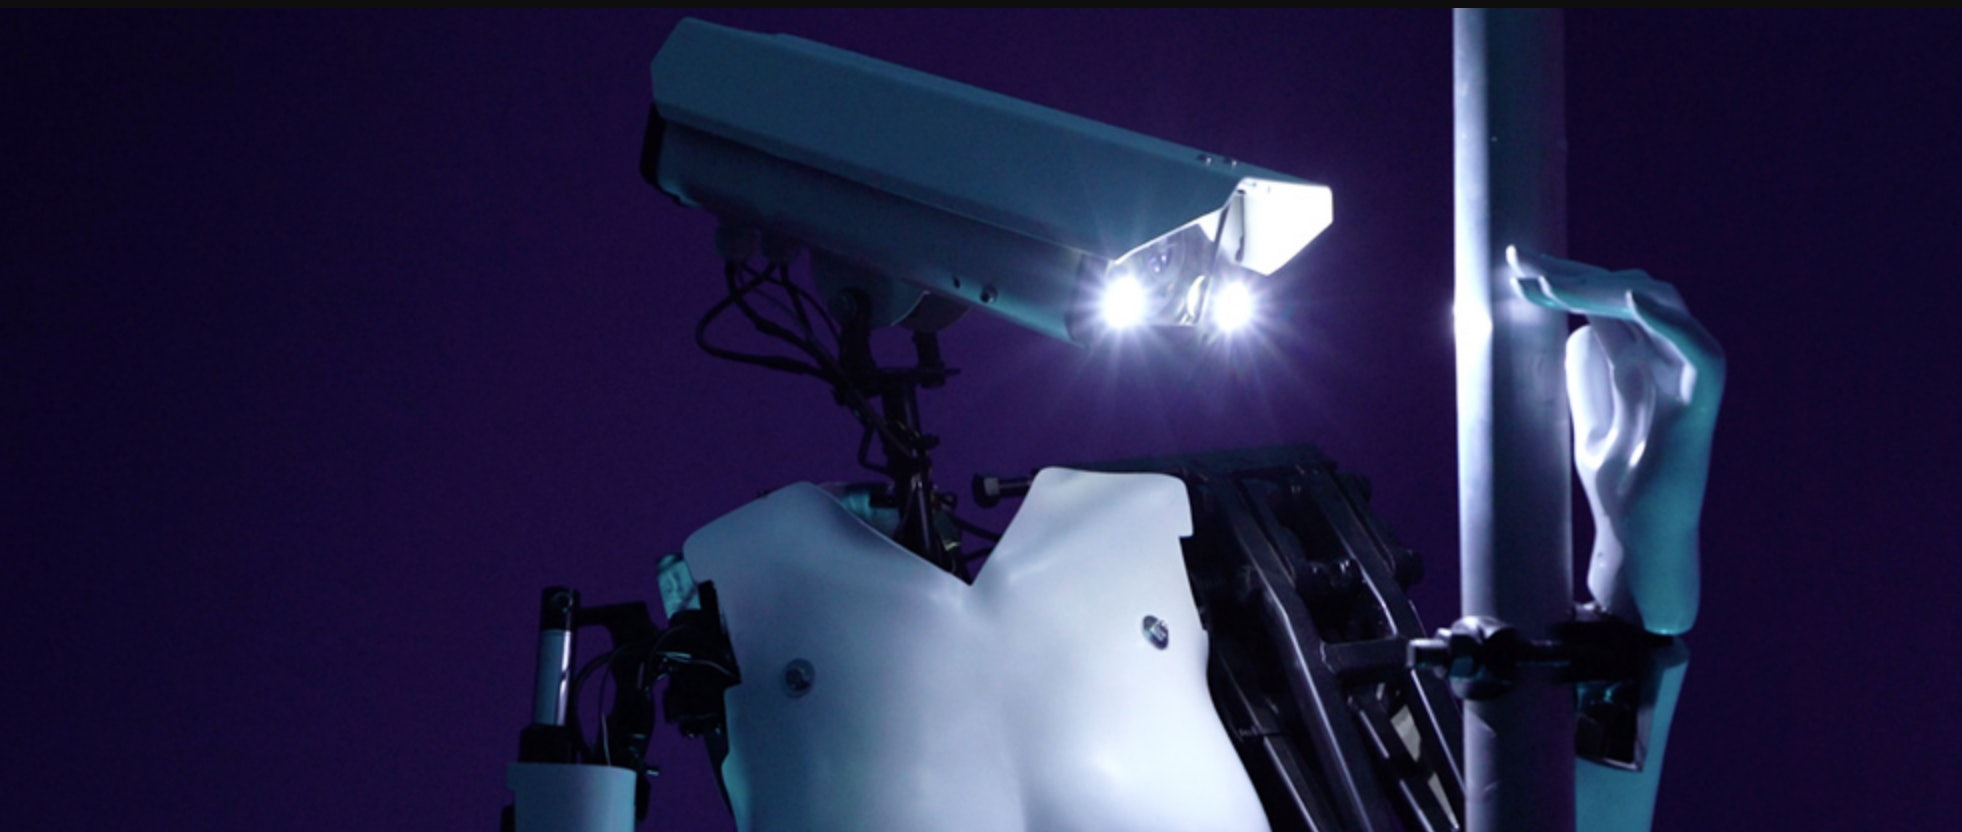 That's just a security camera for a head, isn't it?